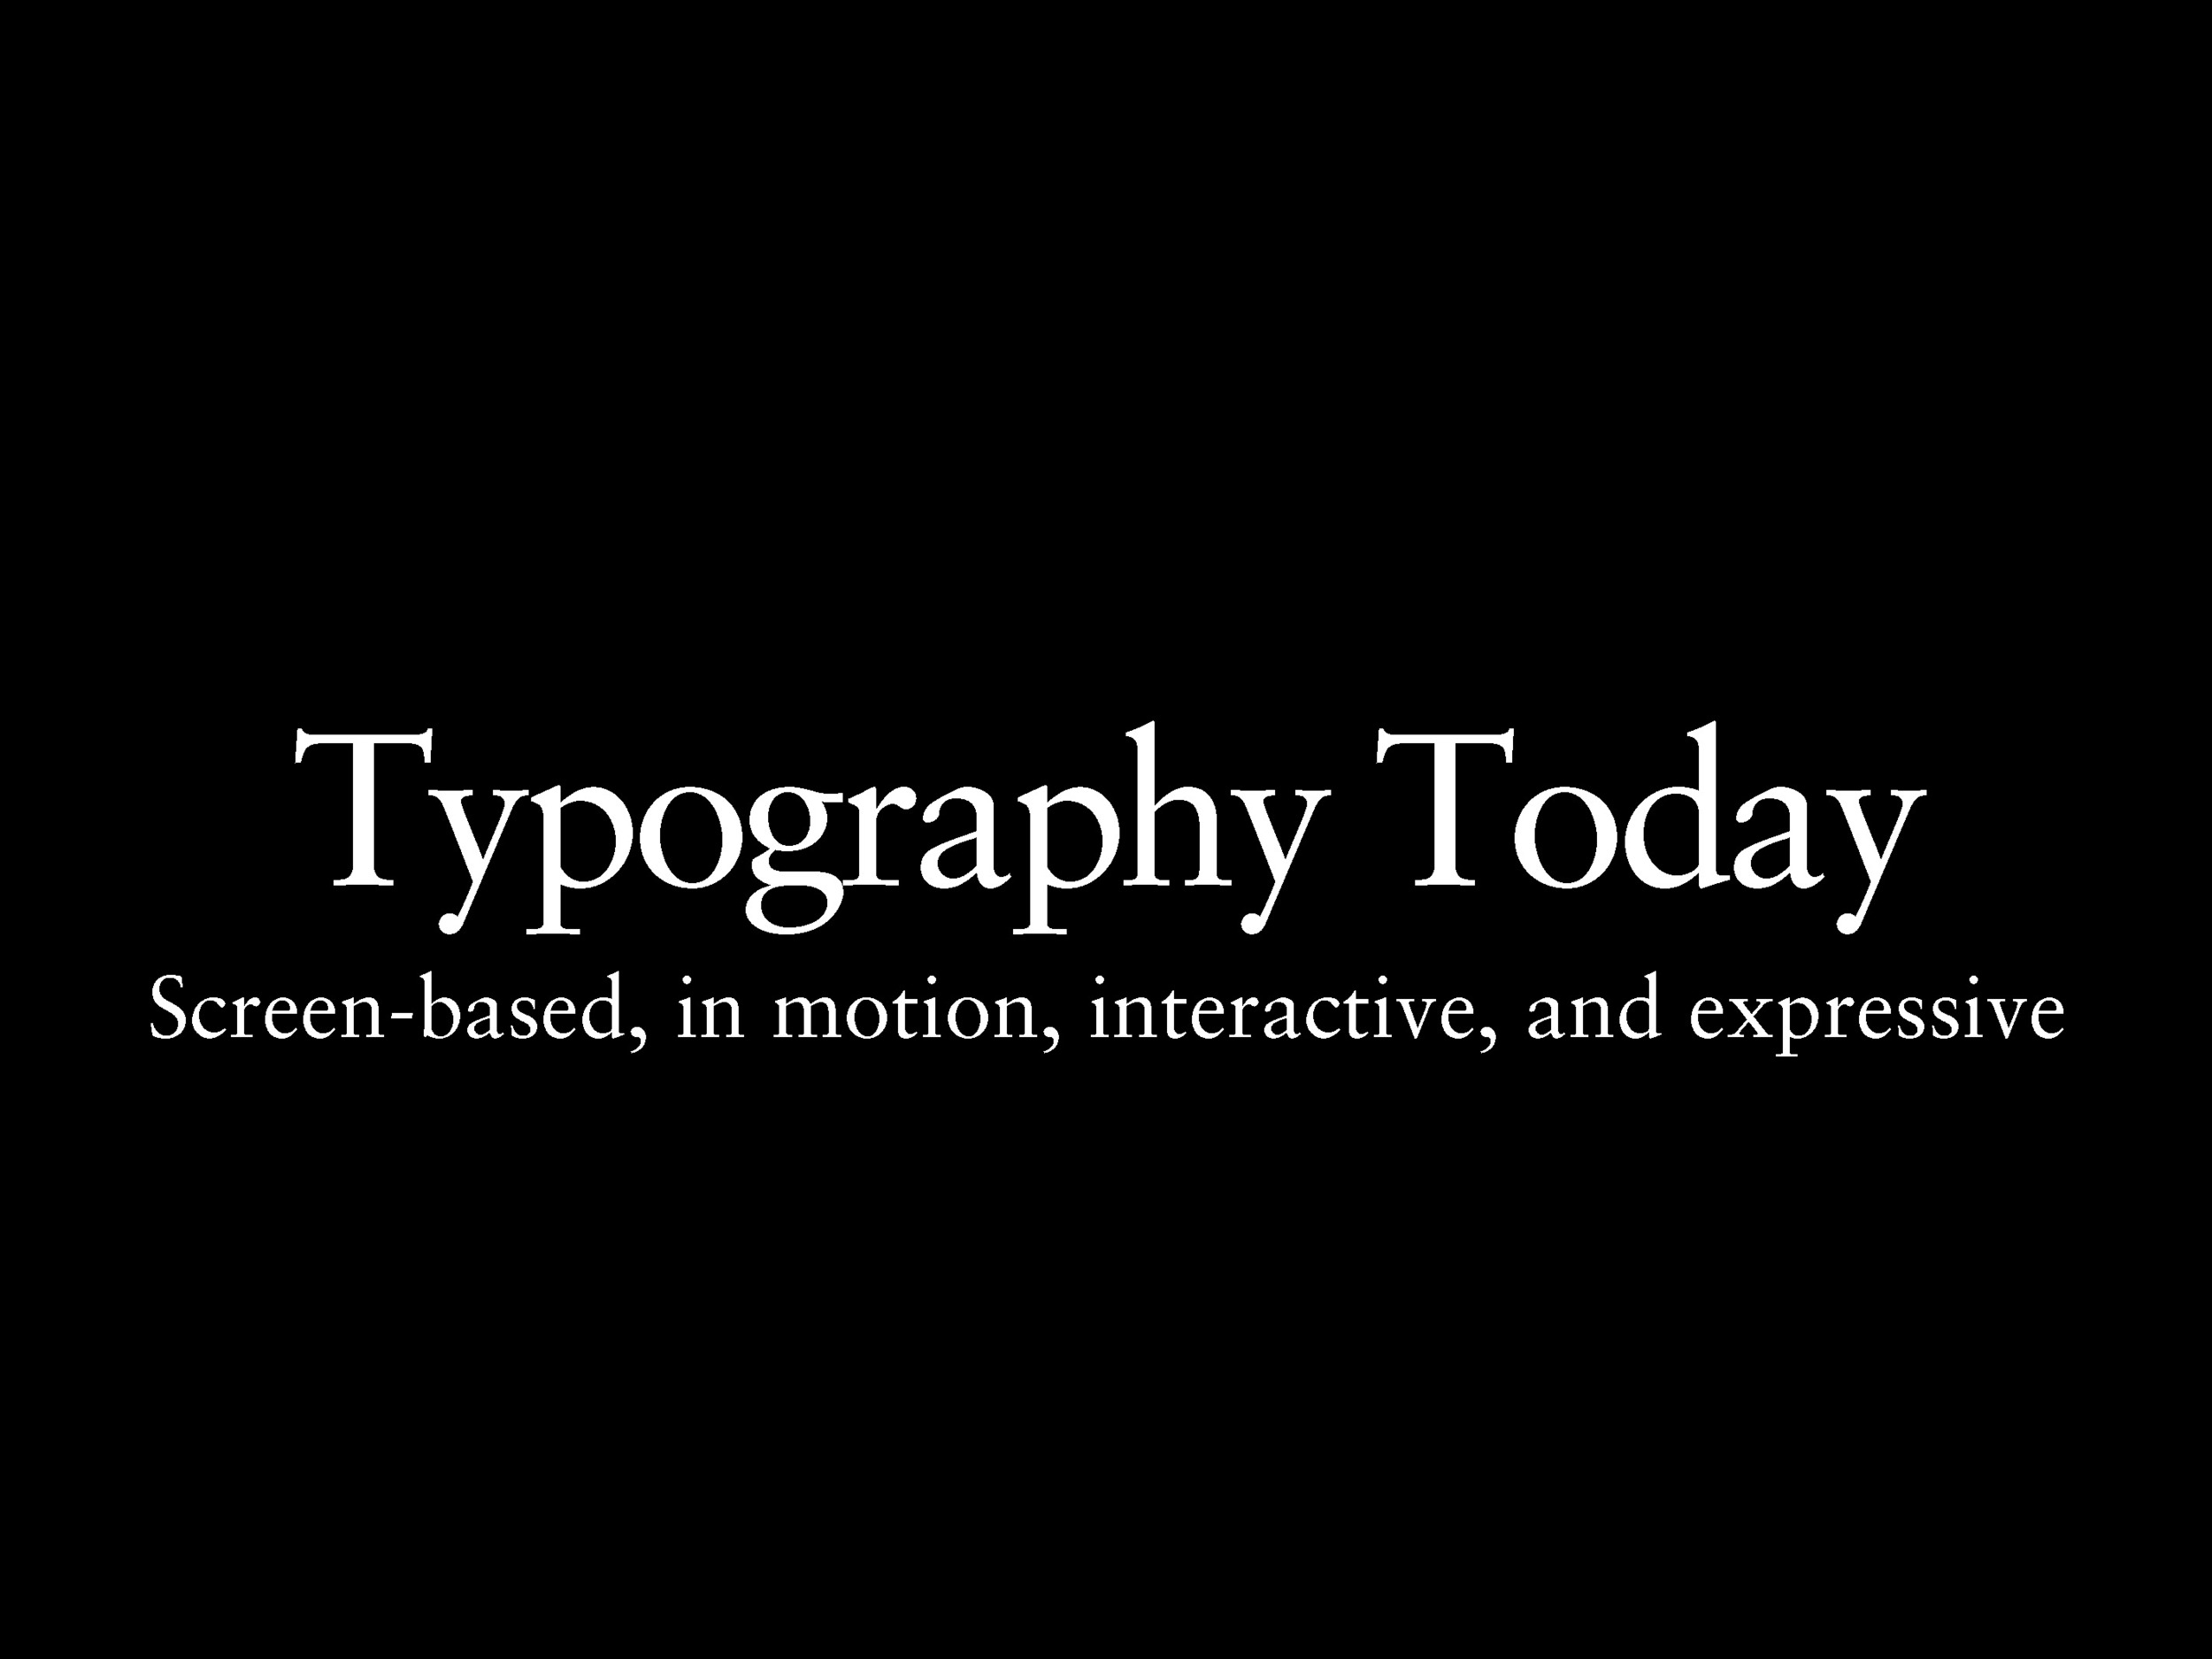 Adams_Typography101_Page_108.jpg